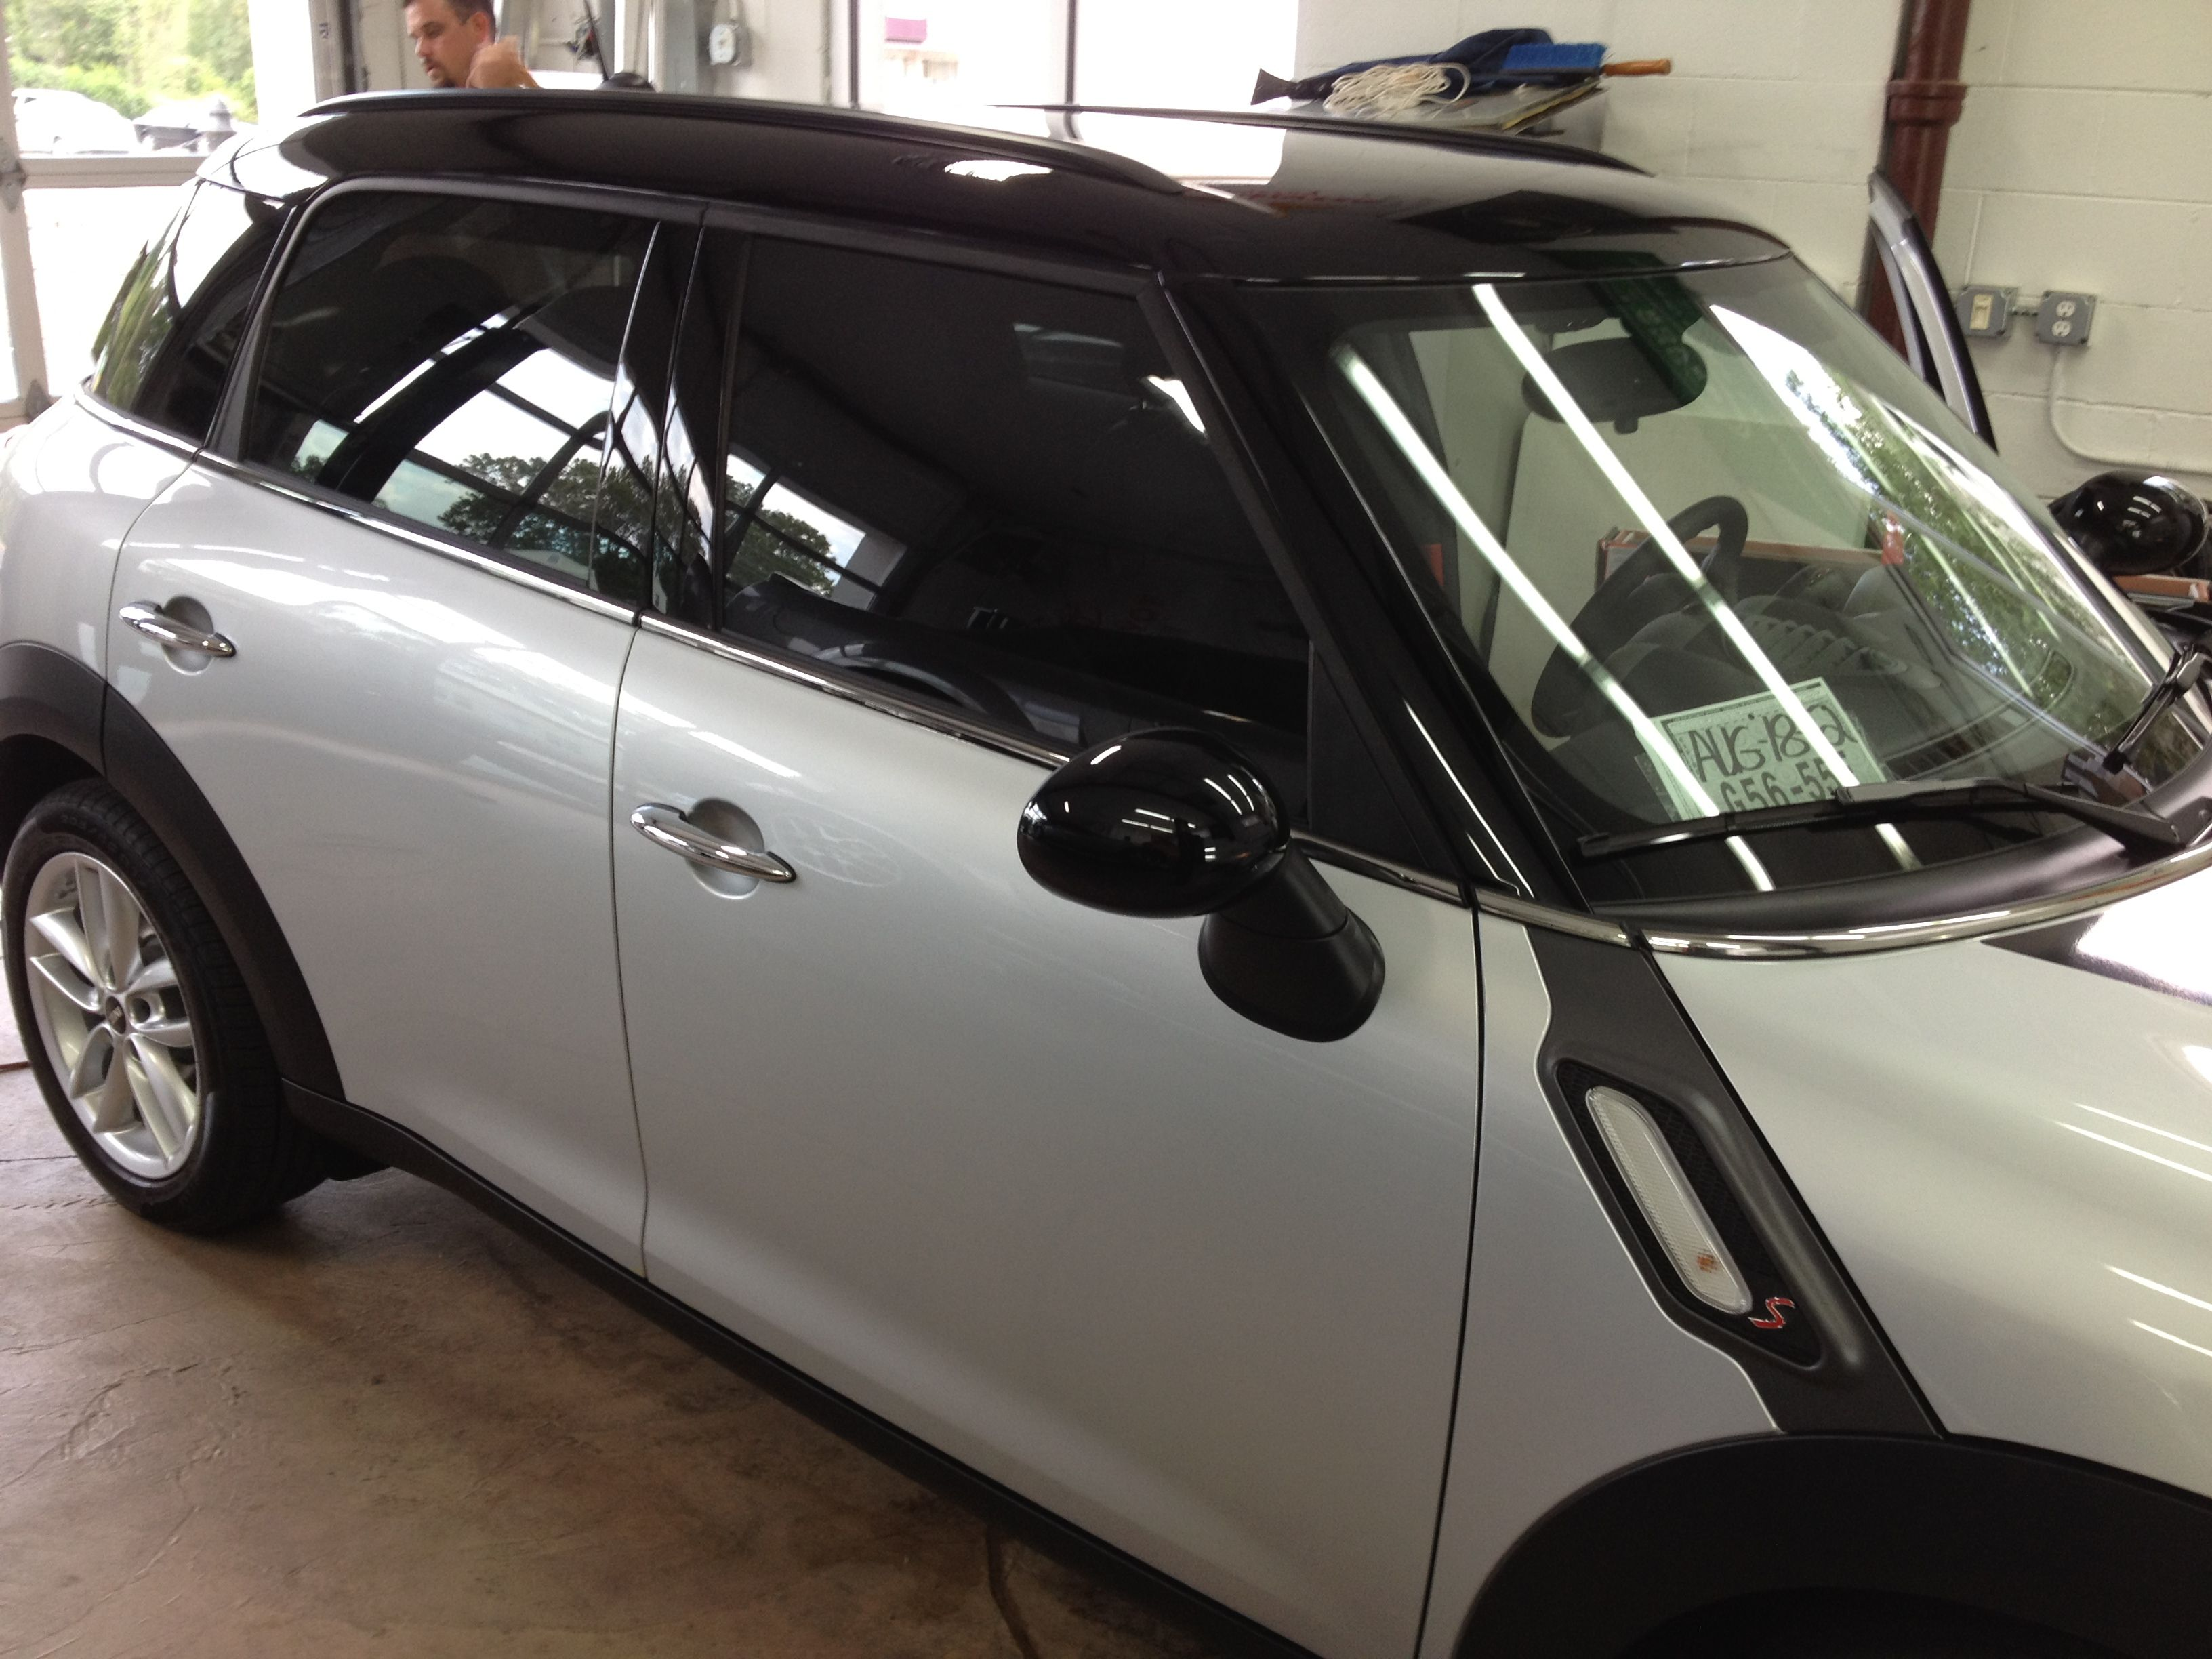 Dalo Motoring Accessories And Tinting Interduce To High Quality